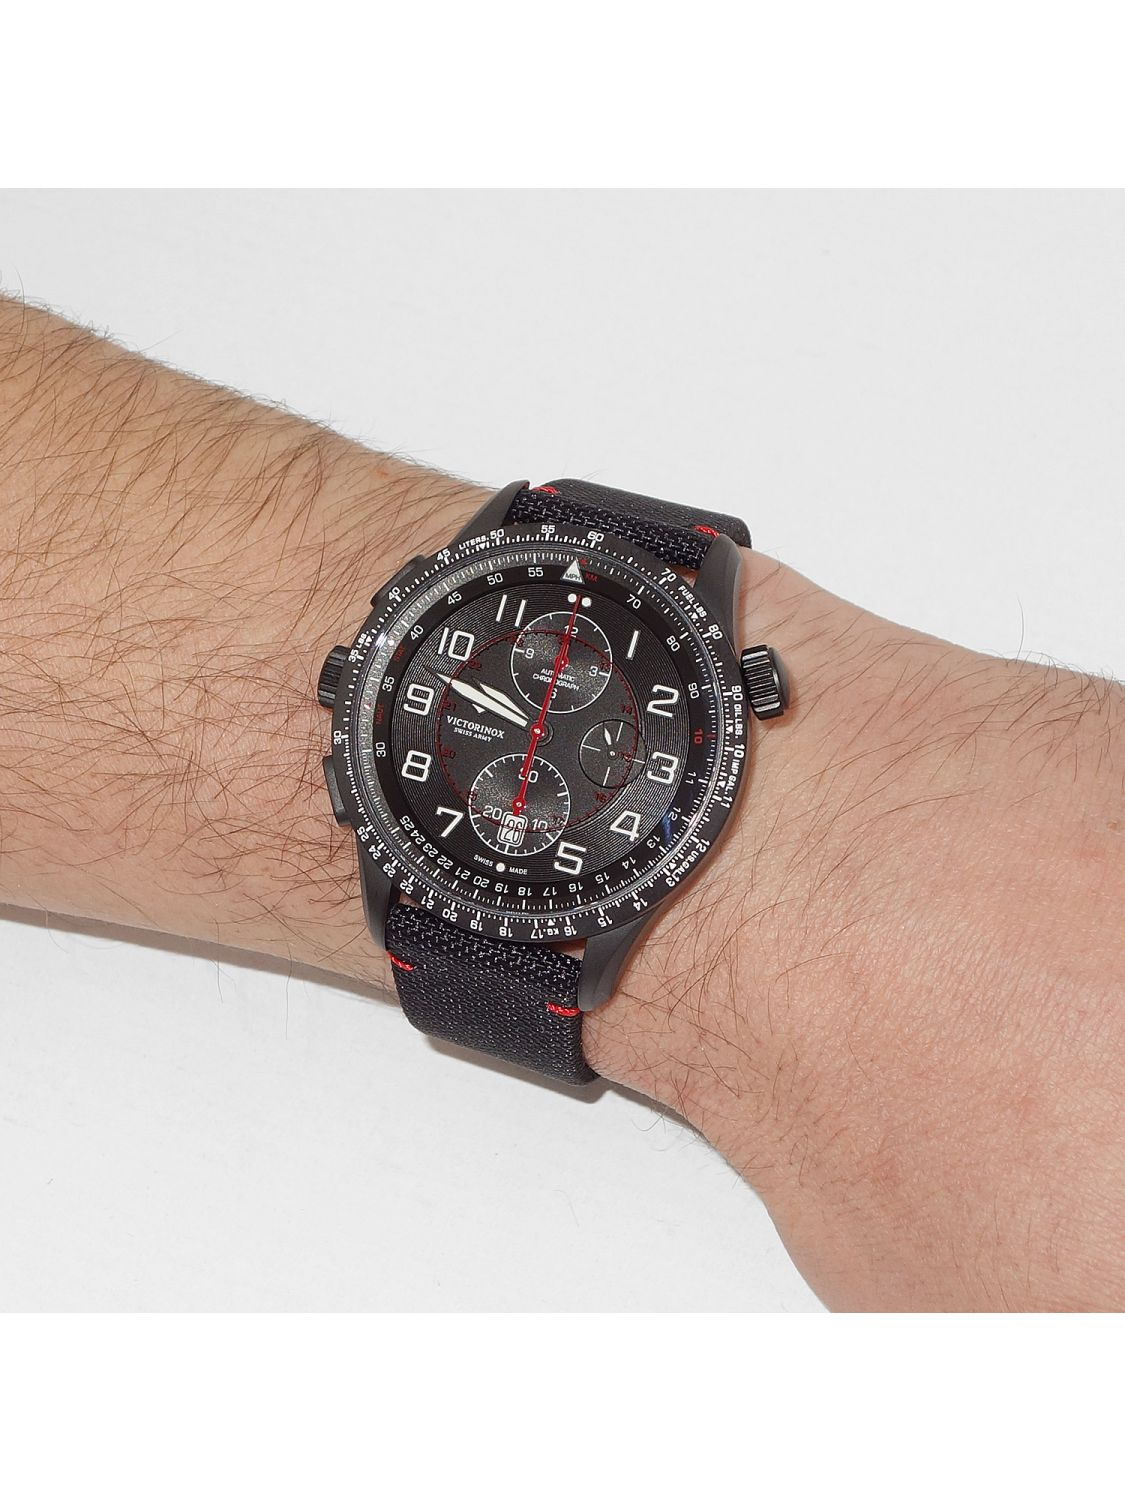 Discussion on this topic: Victorinox AirBoss Mach 9: For The Modern , victorinox-airboss-mach-9-for-the-modern/